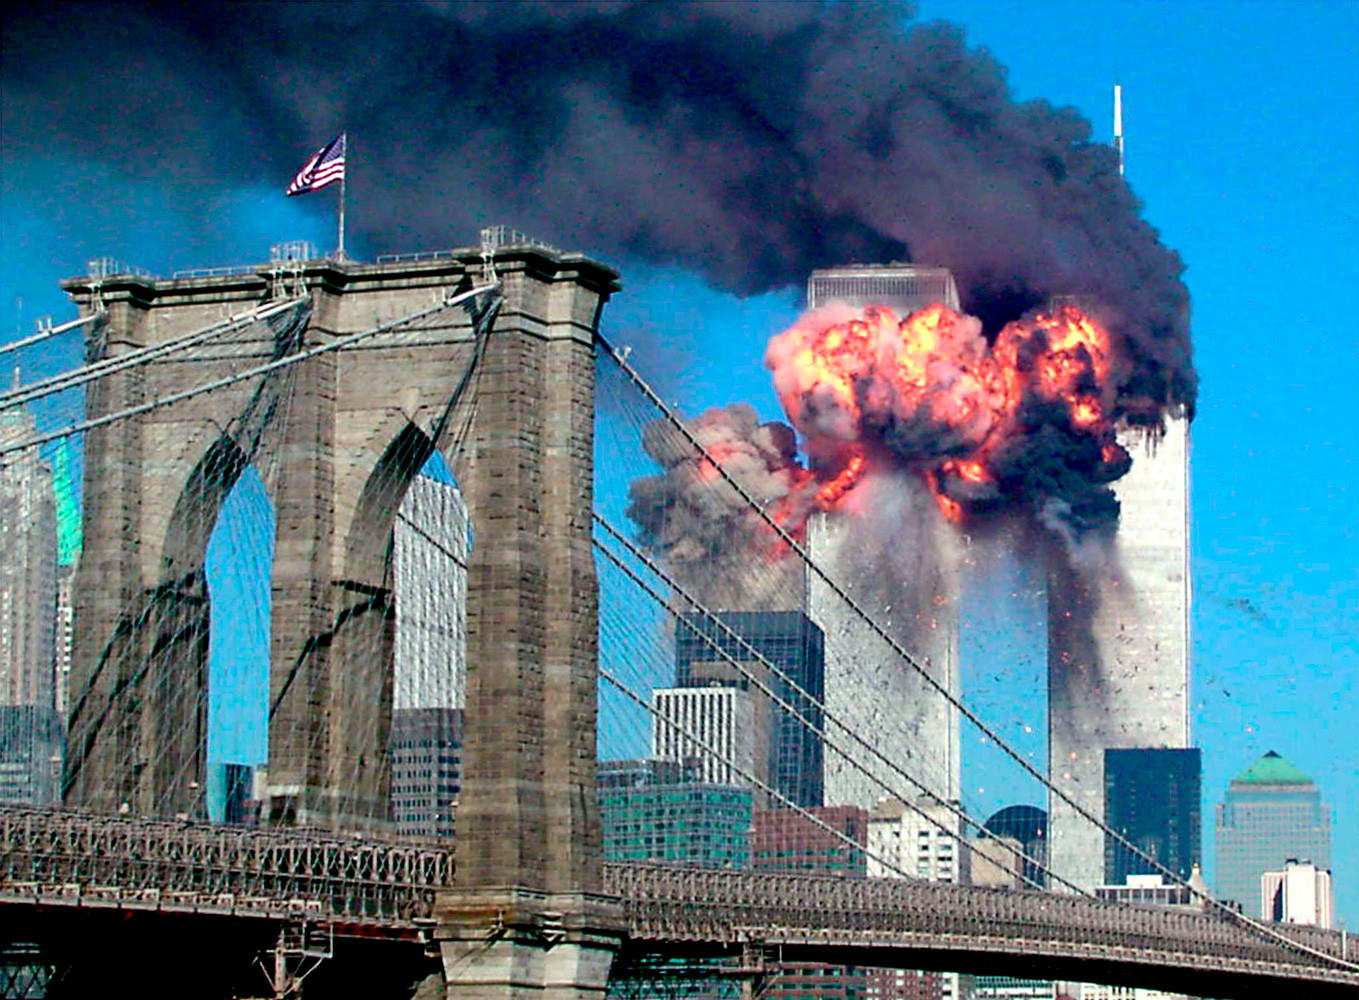 911 truth 911 truth 911 news September 11th attacks facts videos photos quotes hit pieces Avoiding 911 conspiracy theory and disinformation